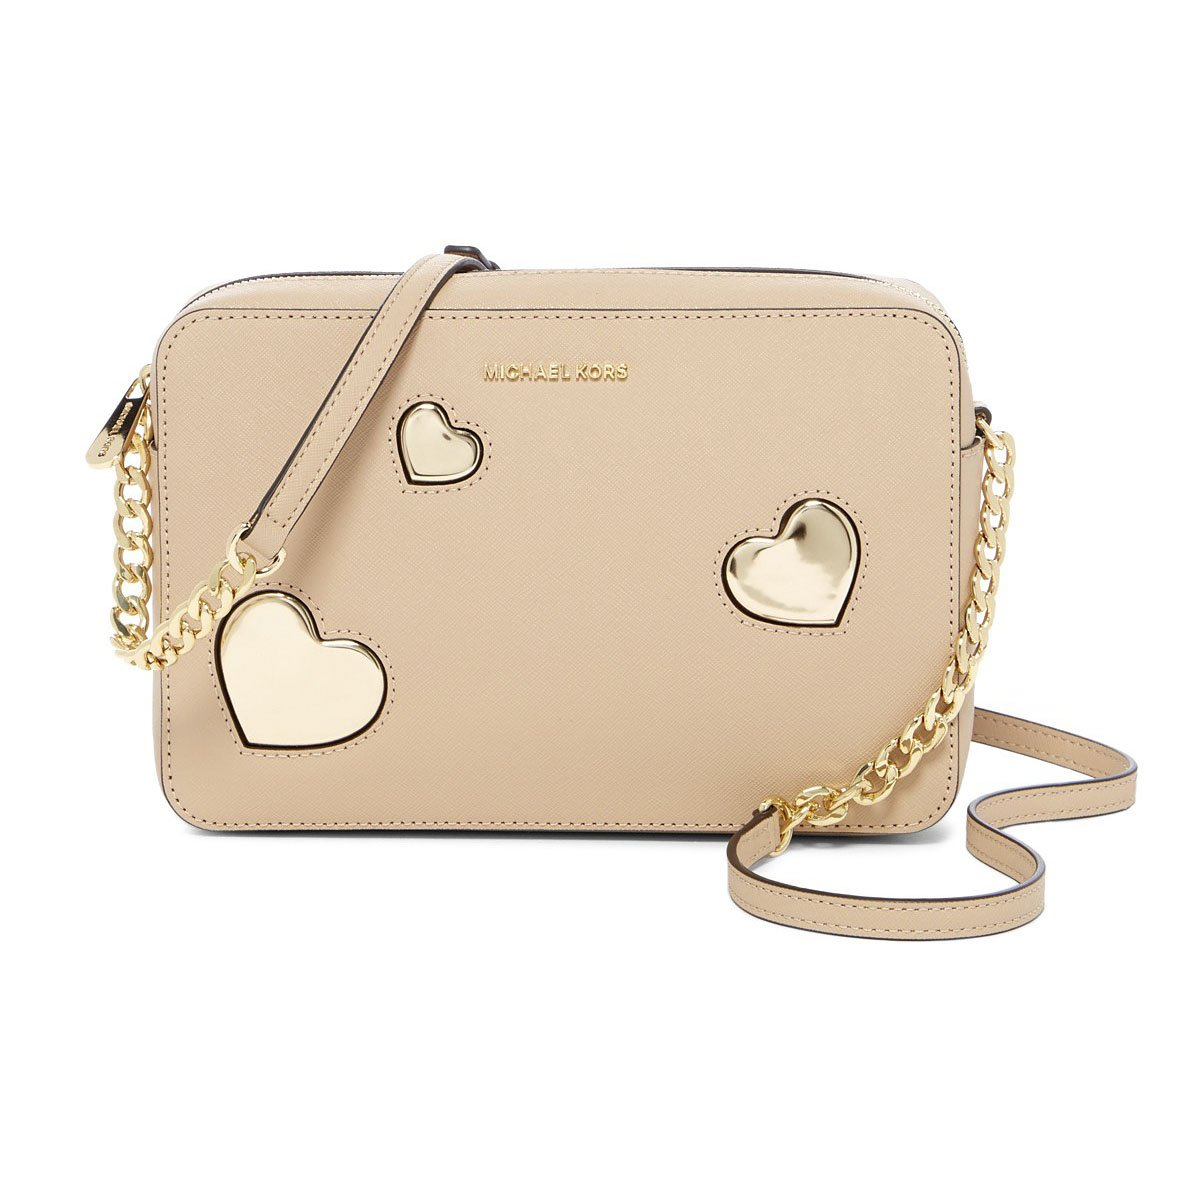 Michael Kors Oyster Leather Gold Peek a Boo Heart Large East West Crossbody